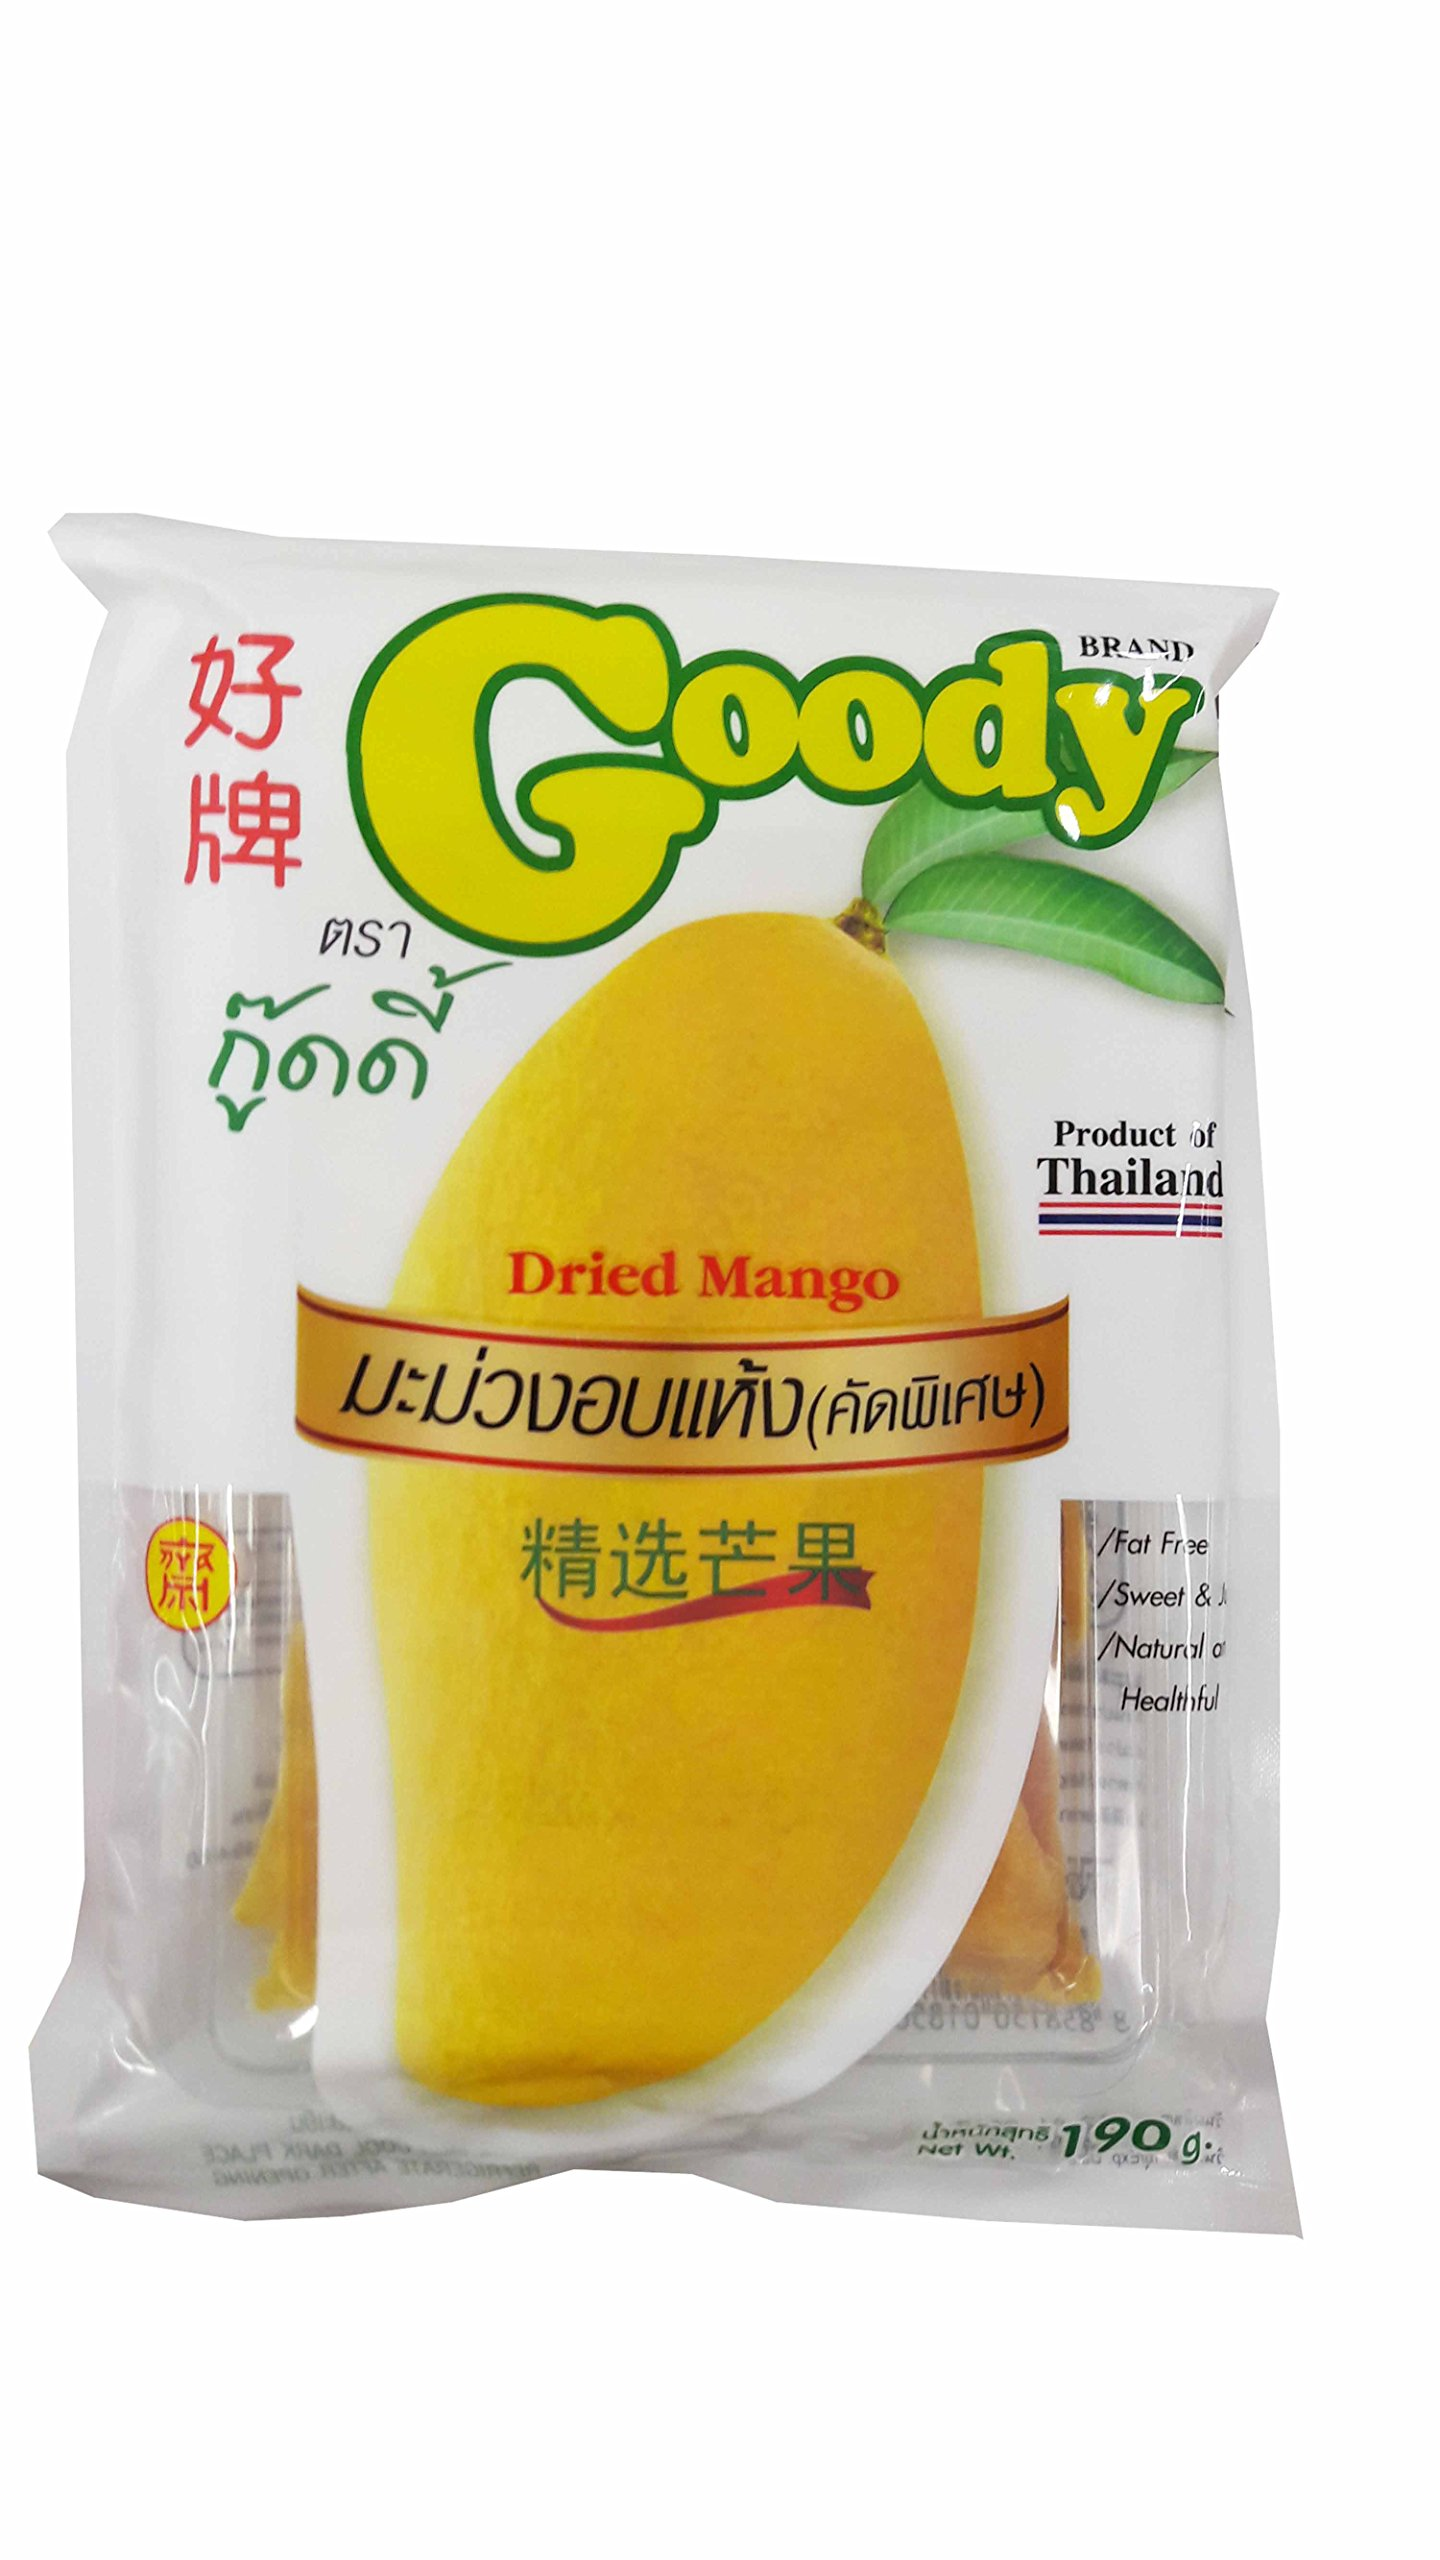 2 Packs of Dried Mango, Made From Real Mango, Delicious Fruit Snack From Goody Brand. Fat free, Sweet & Juicy, Natural and Healthful. (190 g/ pack)